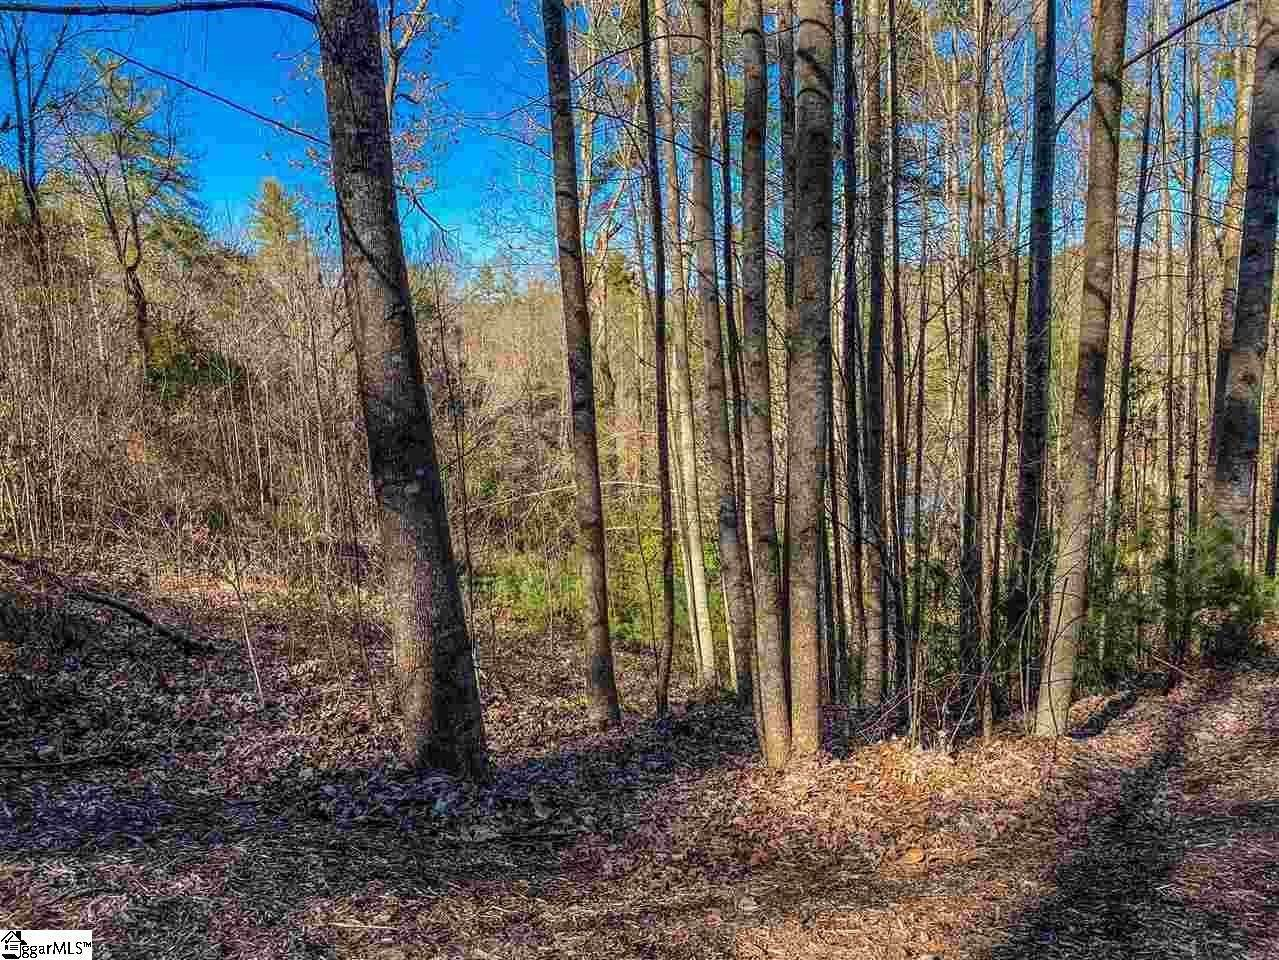 12. Residential Lot for Sale at The Cliffs At Keowee Falls North, Salem, SC 29676